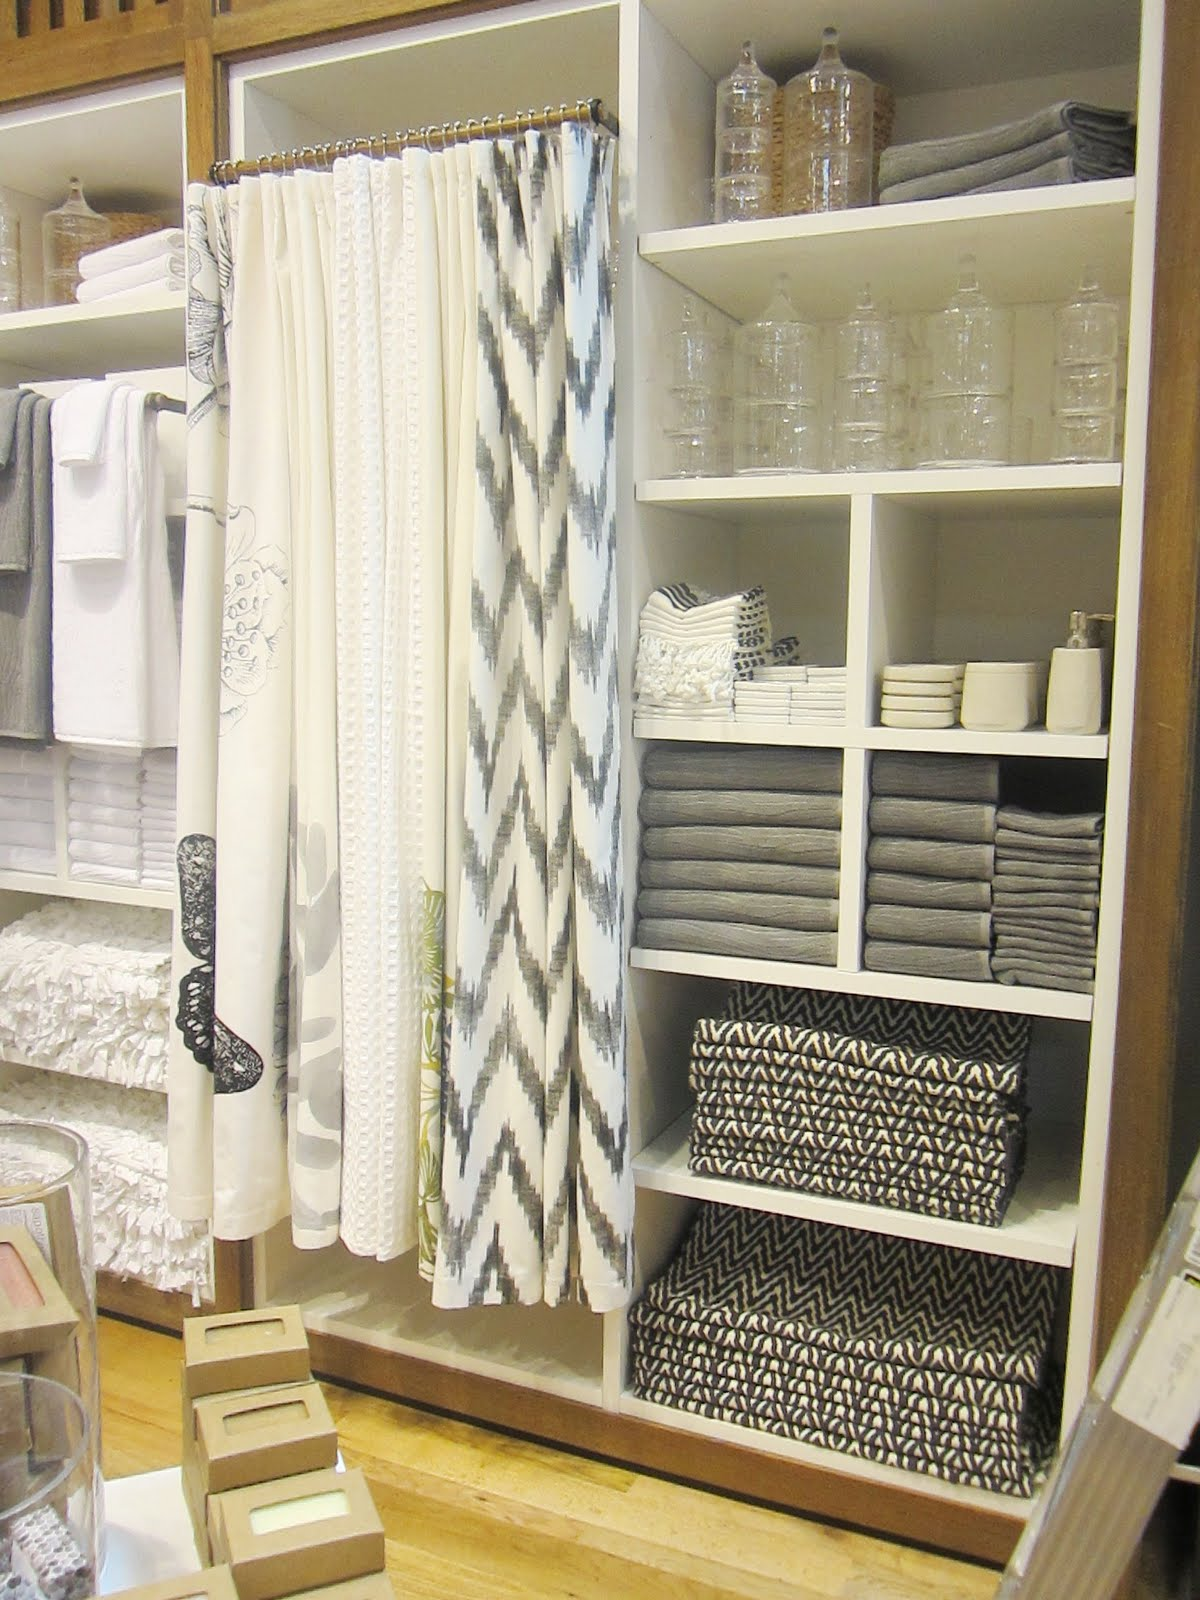 Cococozy new store opening 7 things i 39 m loving from west elm los angeles - West elm bathroom storage ...